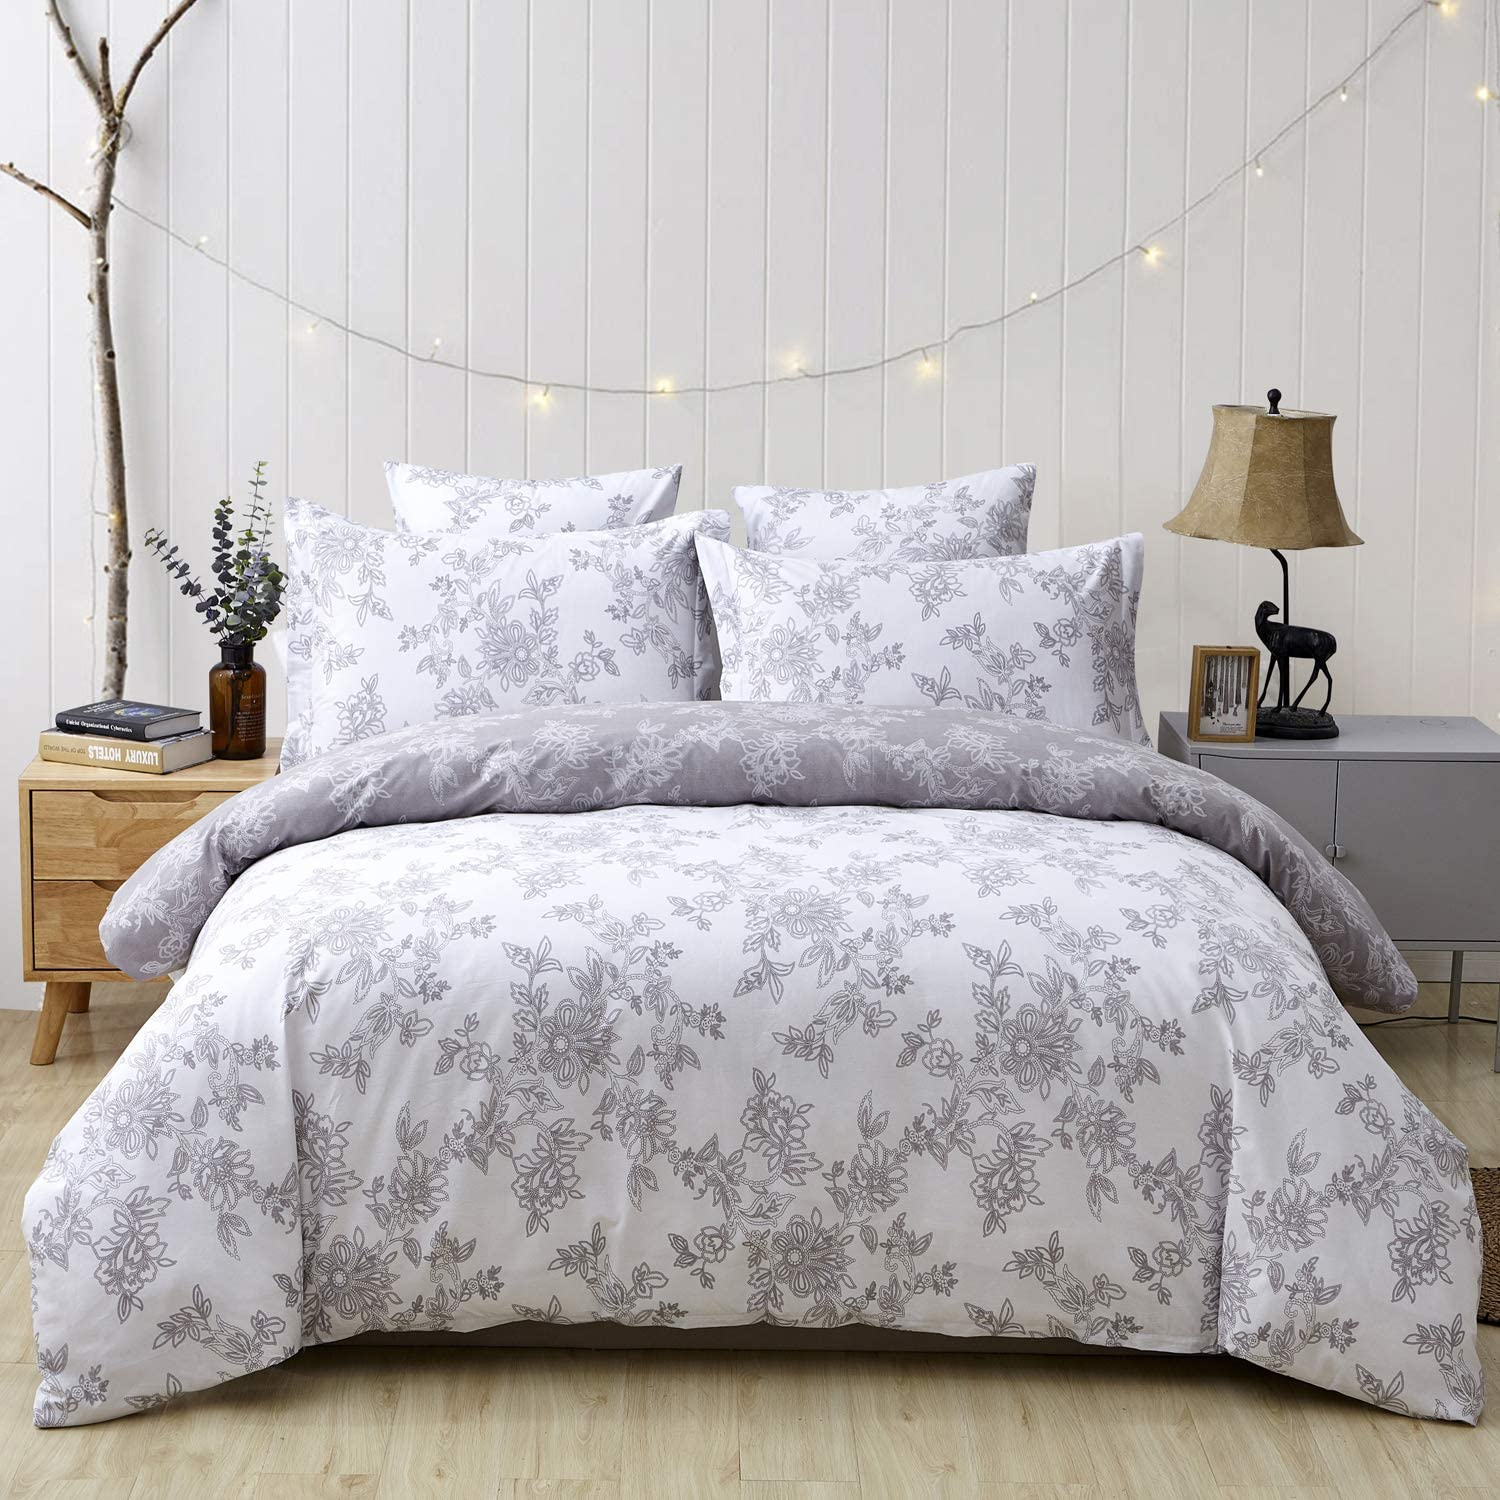 FADFAY Reversible Duvet Cover Set Vintage Floral 100% Cotton Soft Hypoallergenic Grey and White Bedding with Hidden Zipper Closure 3 Pieces, 1Duvet Cover & 2Pillowcases, King/Cal King Size